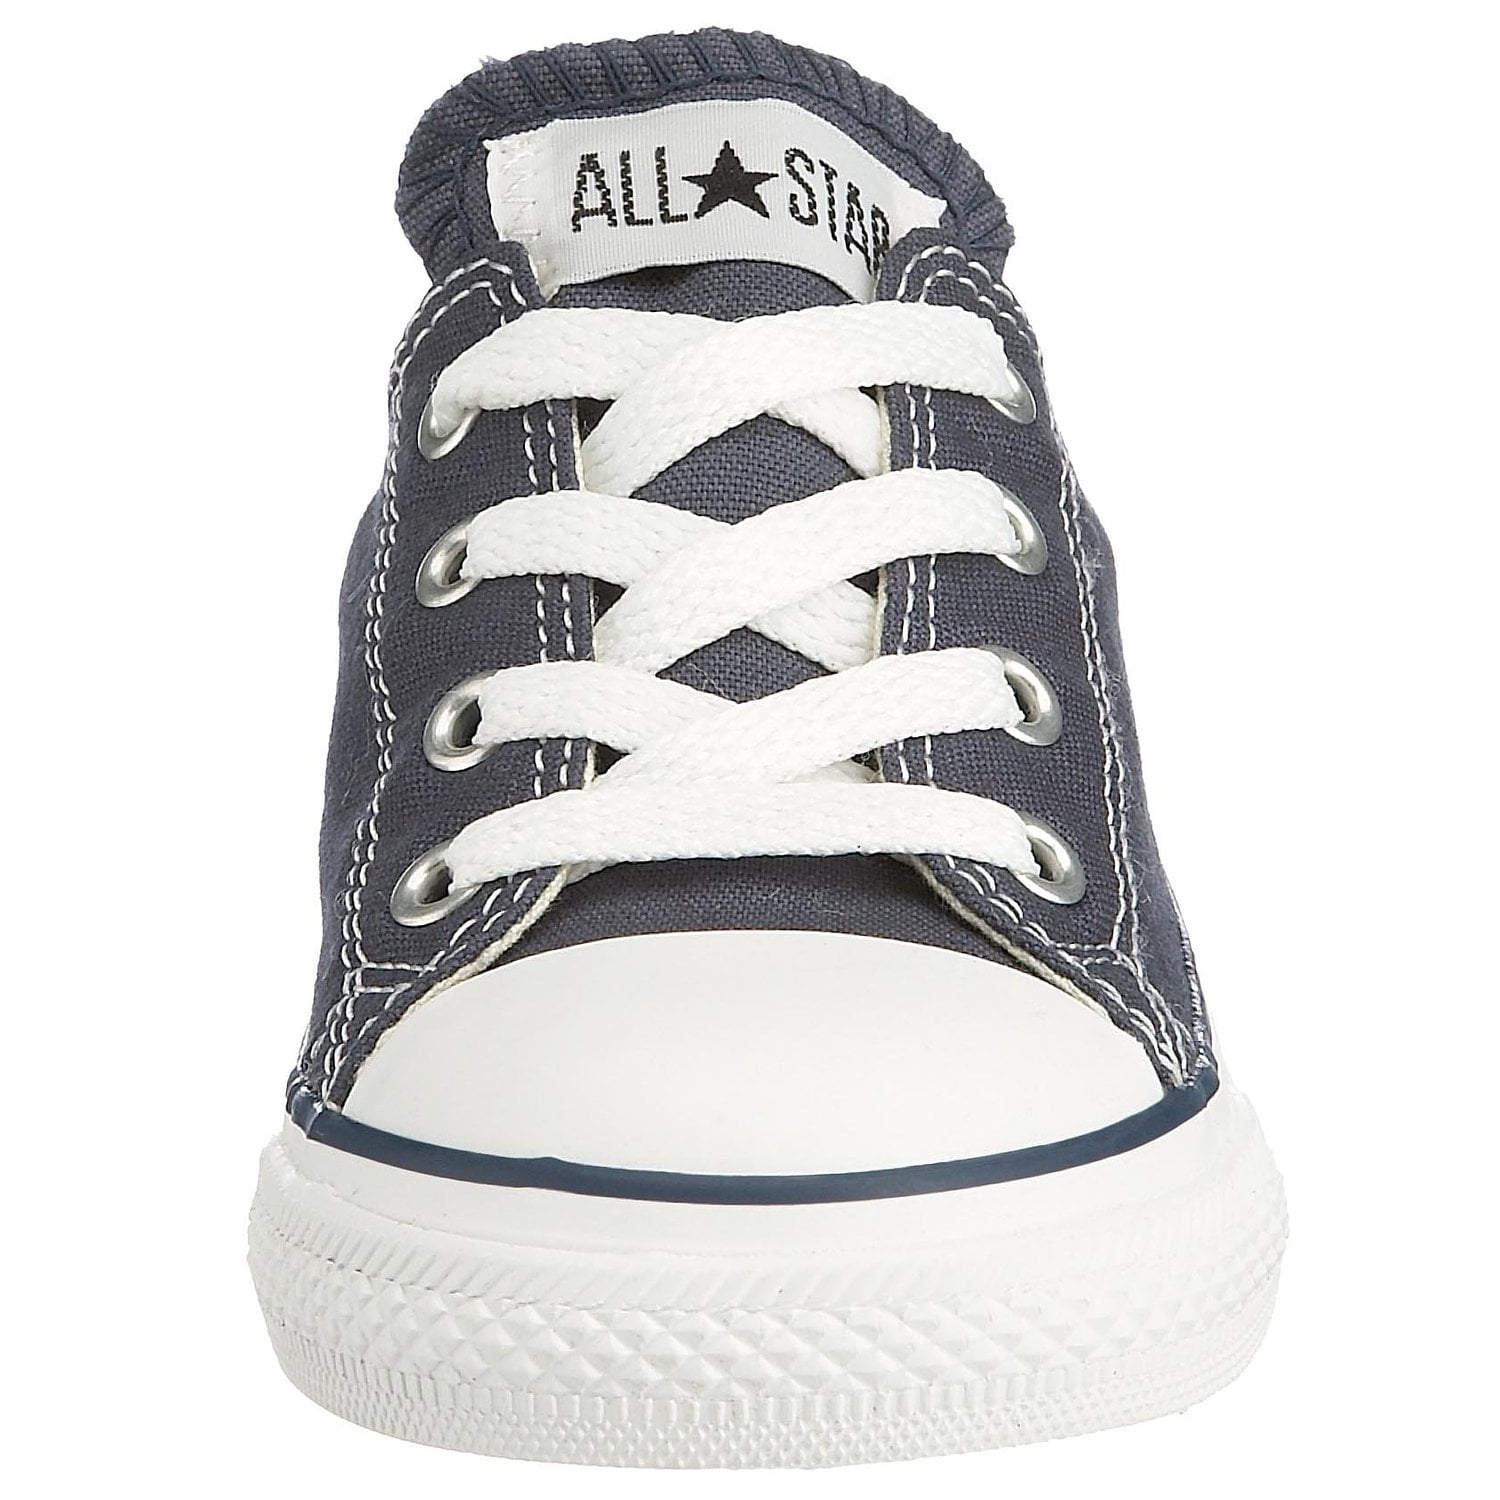 31bd474c978d Shop Converse Unisex Child Infant Toddler Chuck Taylor All Star Ox - Navy - 10  TOD - Free Shipping On Orders Over  45 - Overstock.com - 17949688